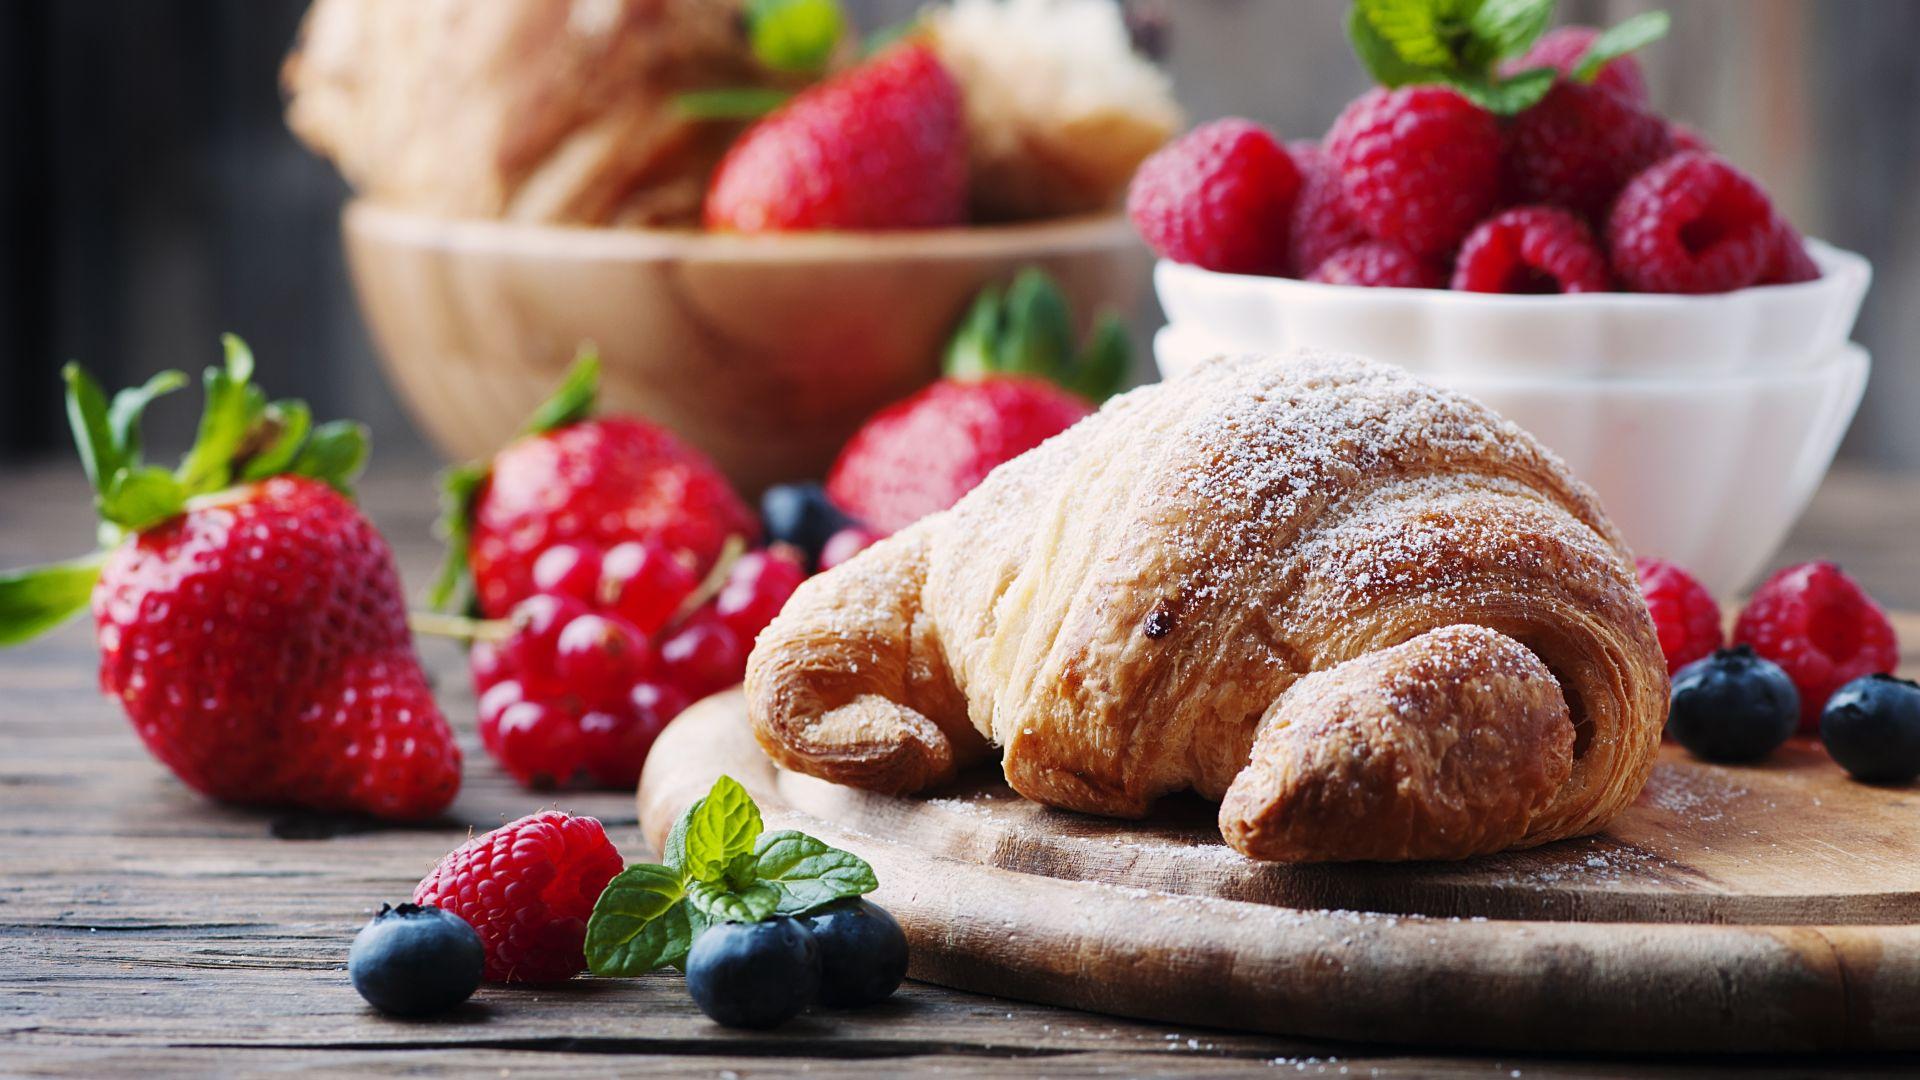 французкие круасаны, French croissants, fruit, berries, strawberry, raspberry, delicious, 4k (horizontal)